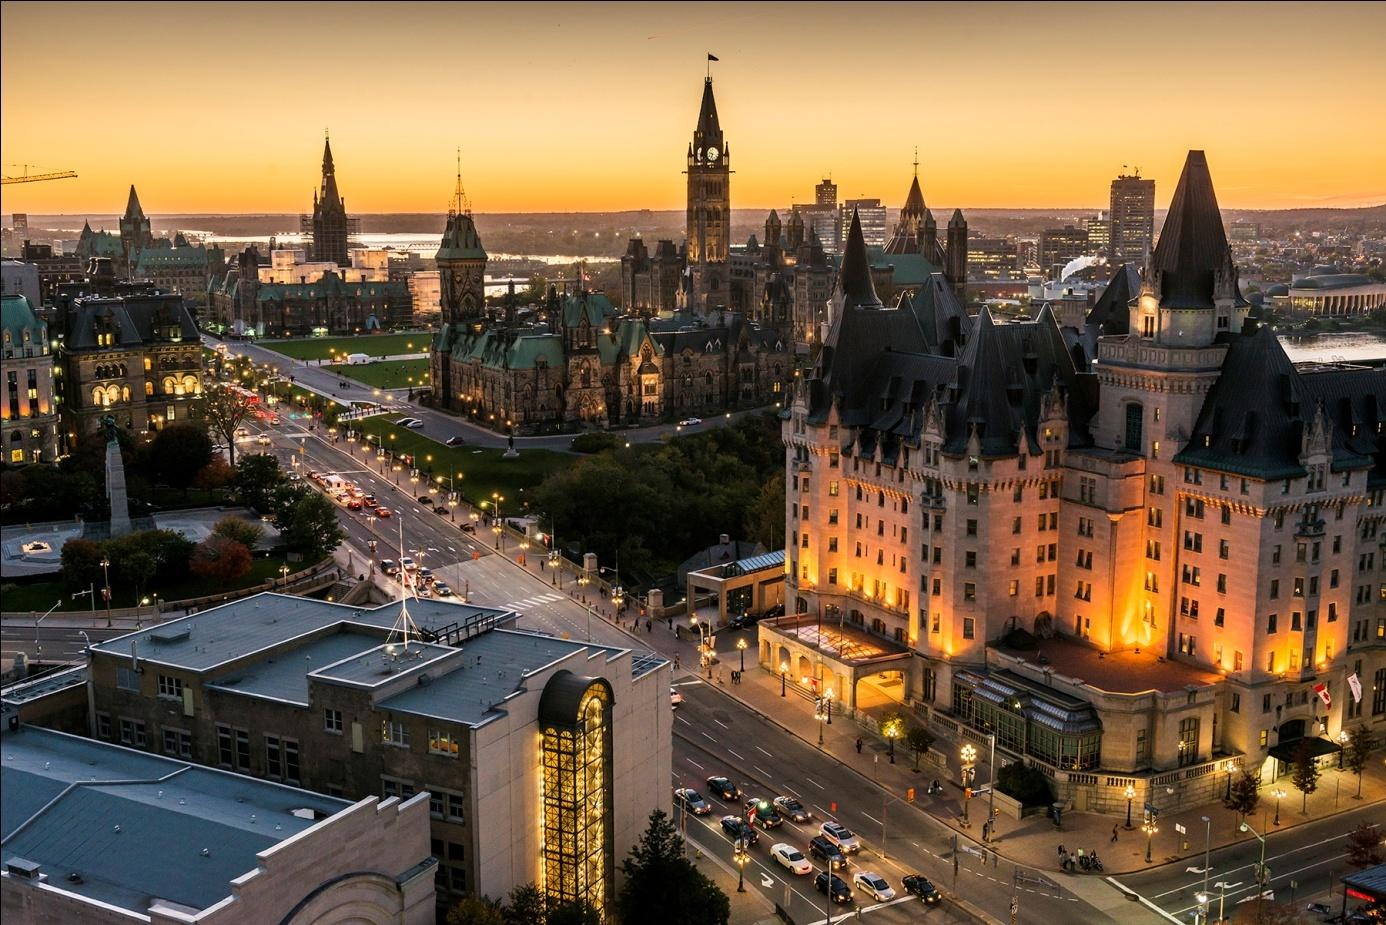 http://claridgehomes.com/panoramic-view-of-downtown-ottawa-with-parliament-hill_016-credit-ottawa-tourism.jpg